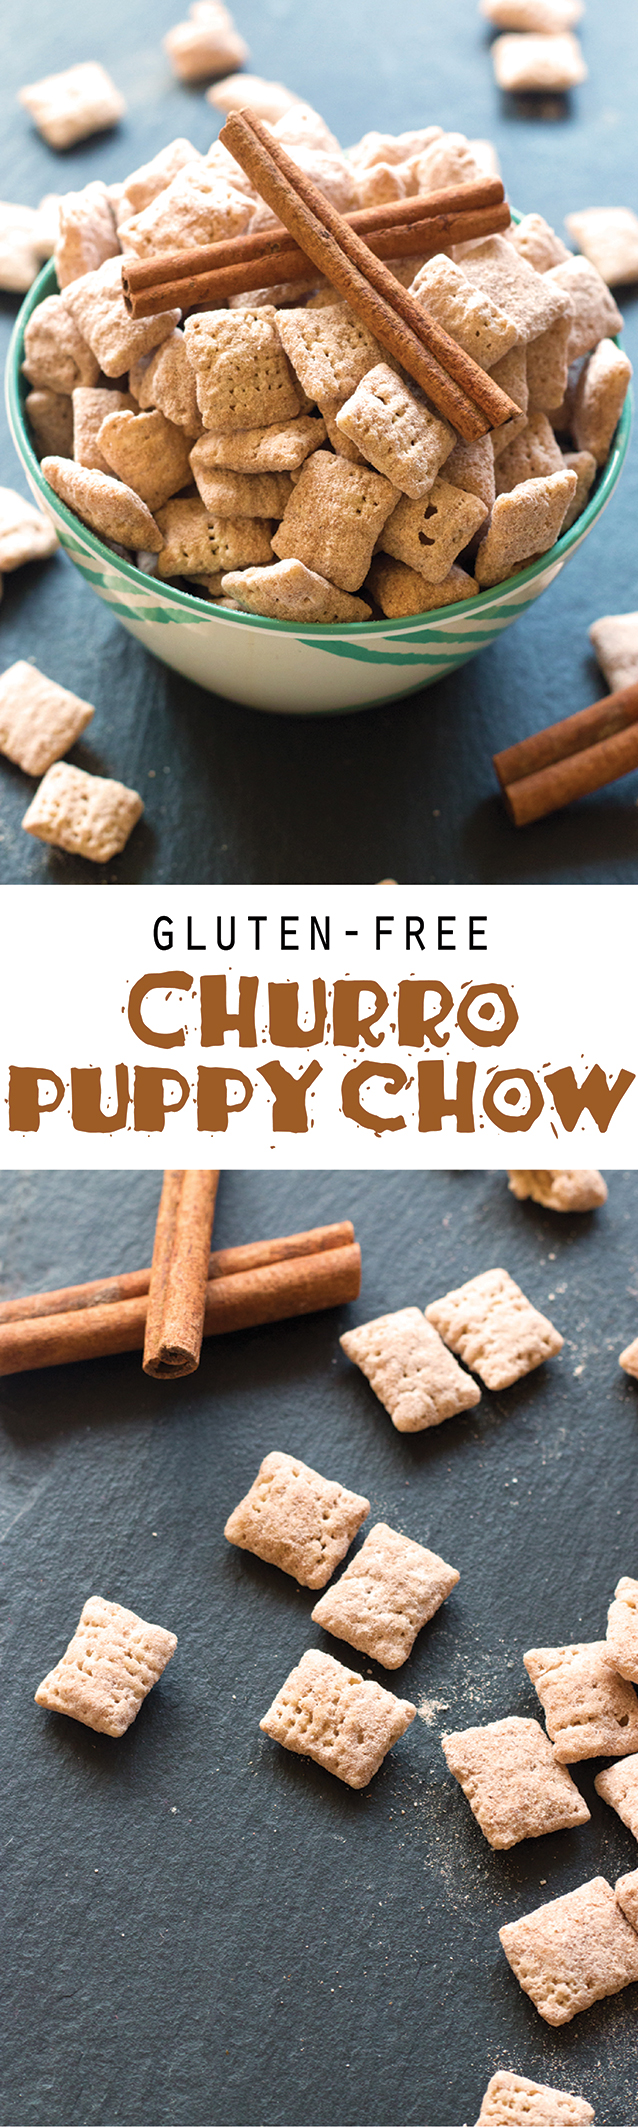 Gluten-Free Churro Puppy Chow | www.grainchanger.com